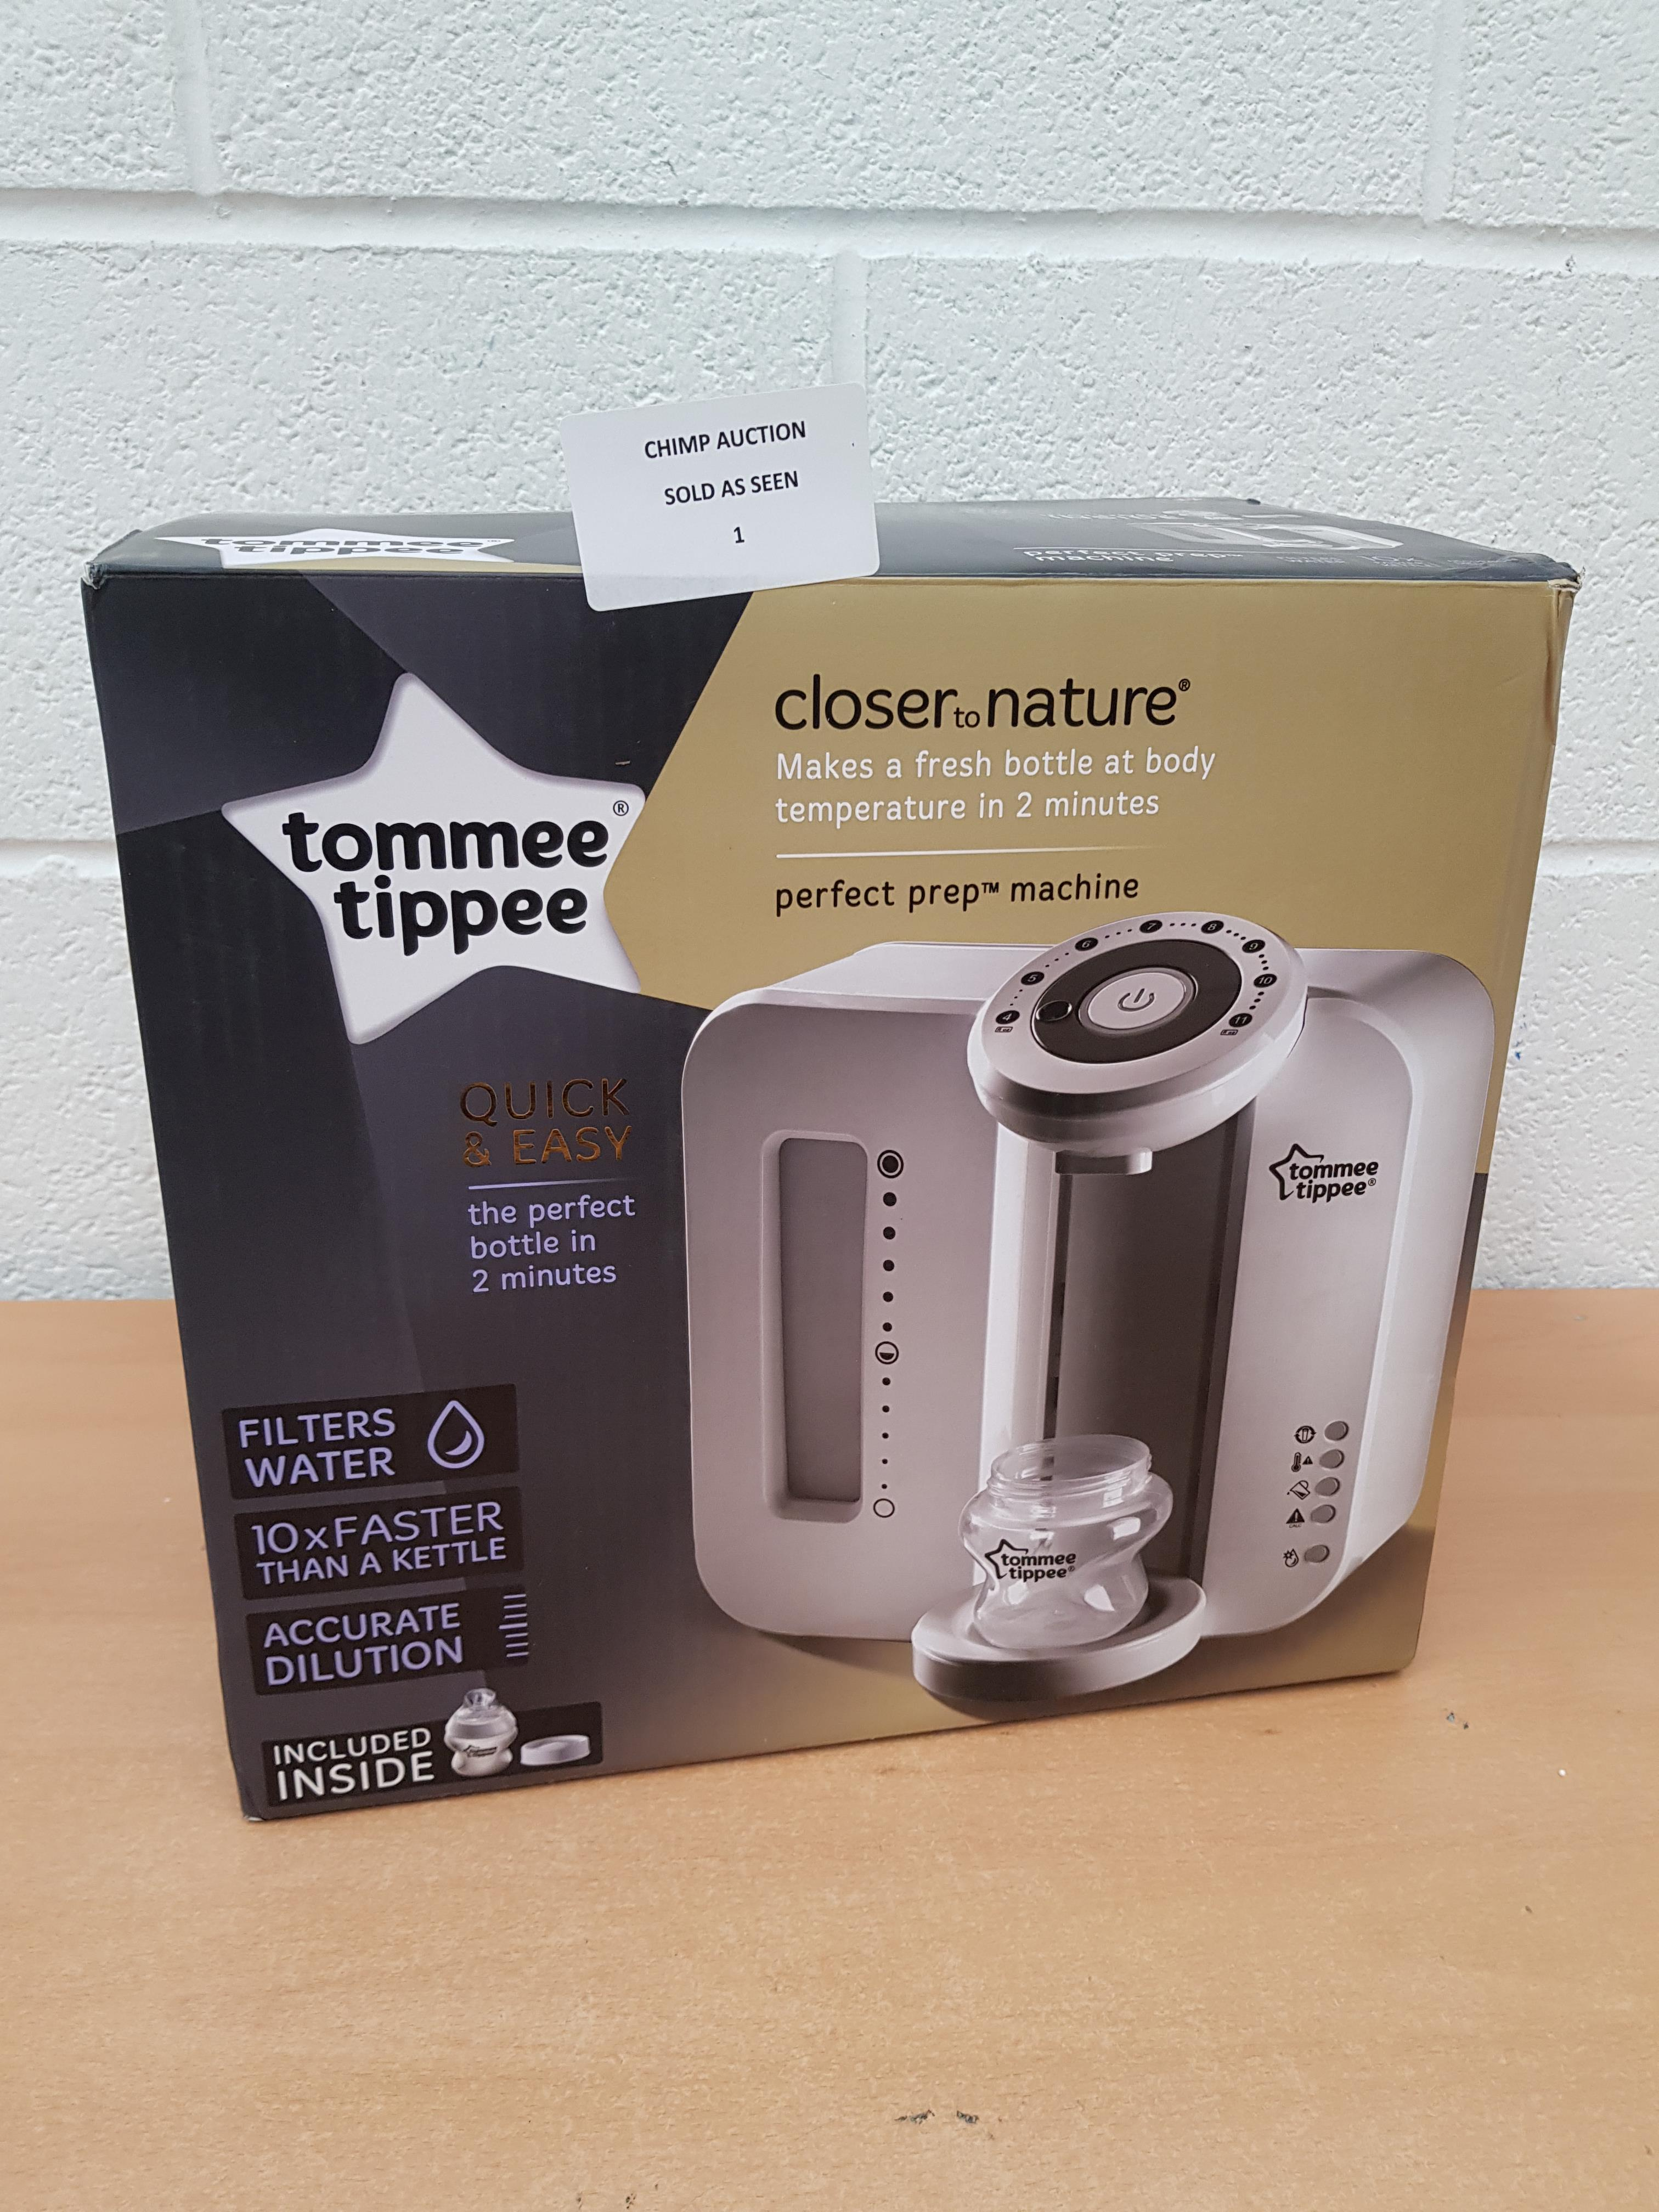 Lot 1 - Tommee Tippee Perfect Prep Machine RRP £129.99.